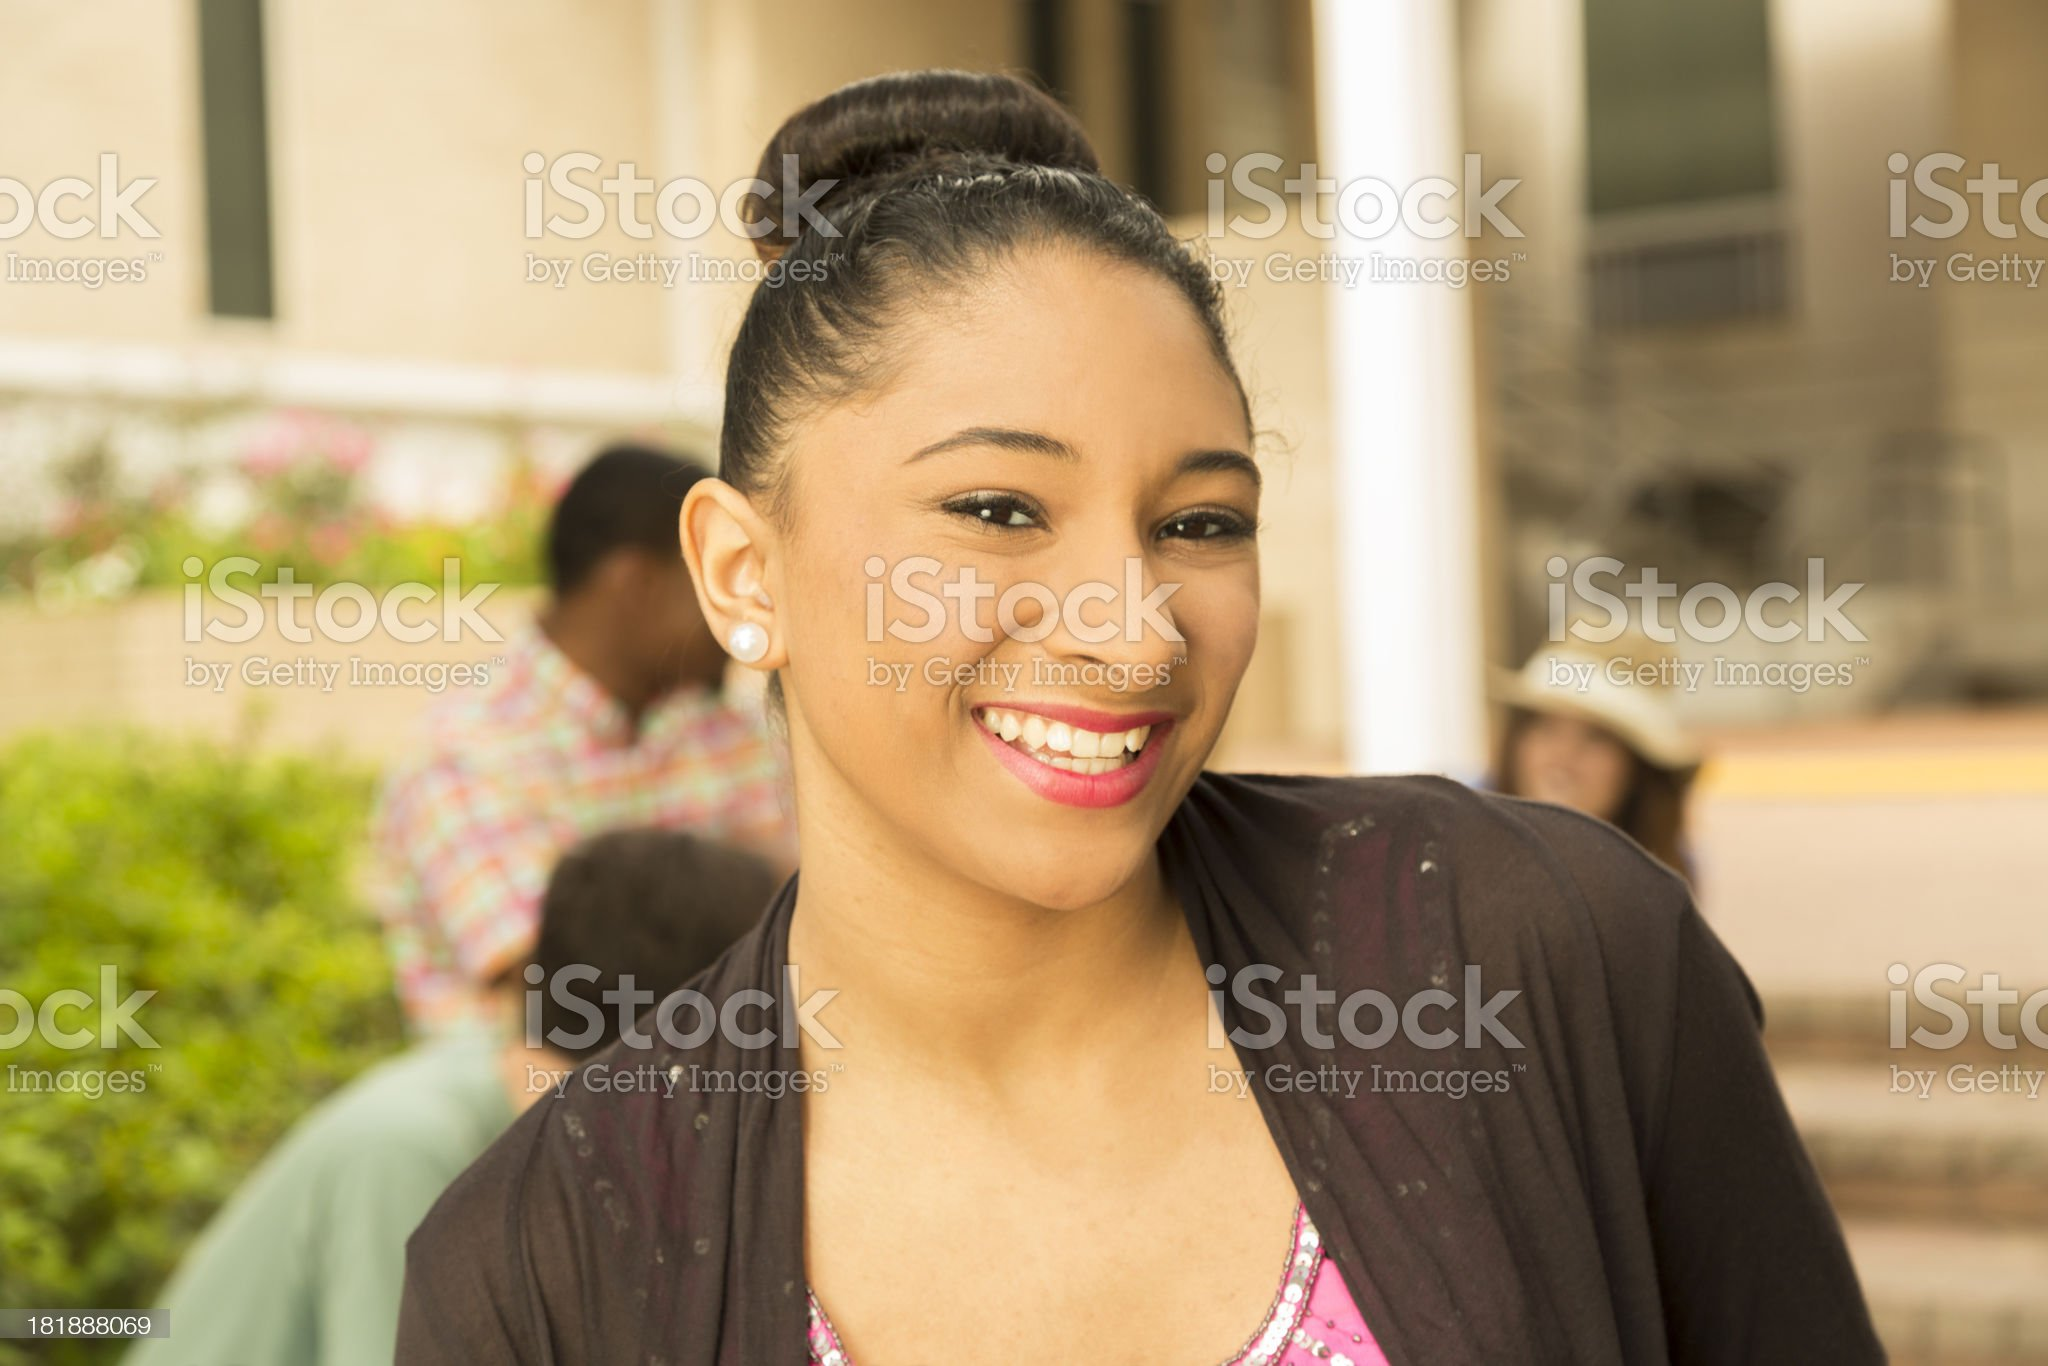 Fashion: Beautiful Young adult outdoors with friends in background royalty-free stock photo